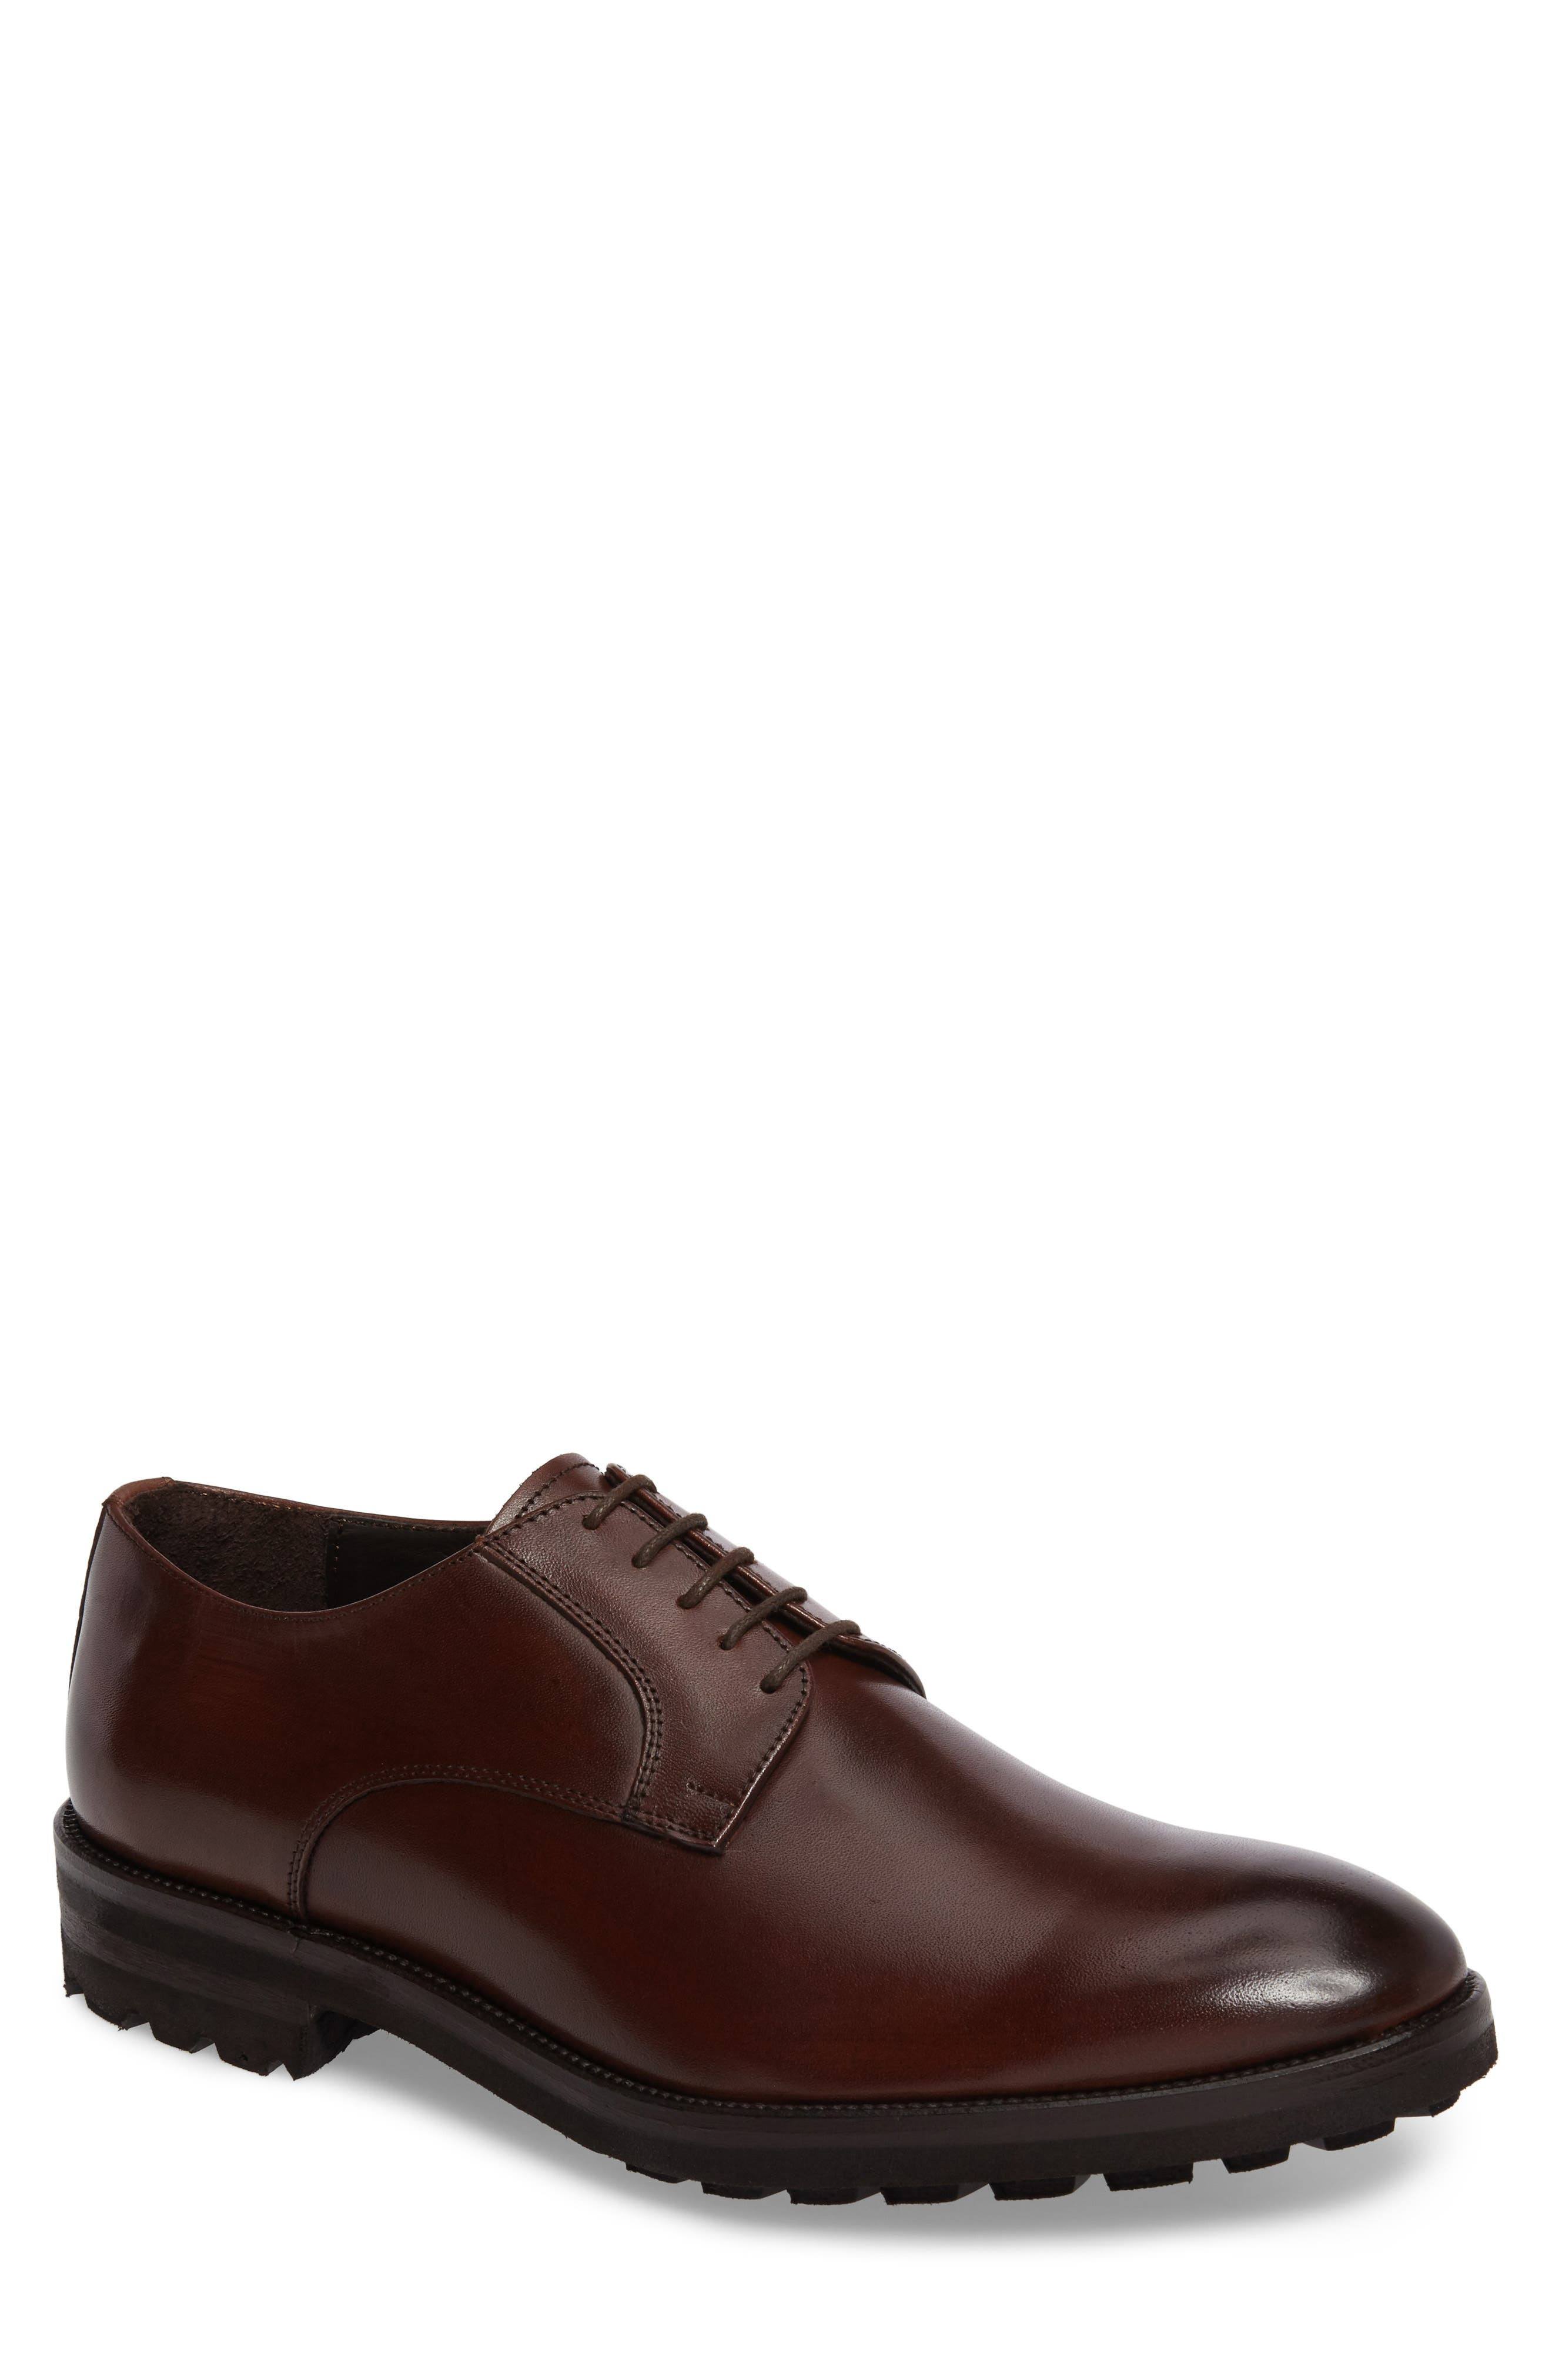 Main Image - To Boot New York Martell Plain Toe Derby (Men)